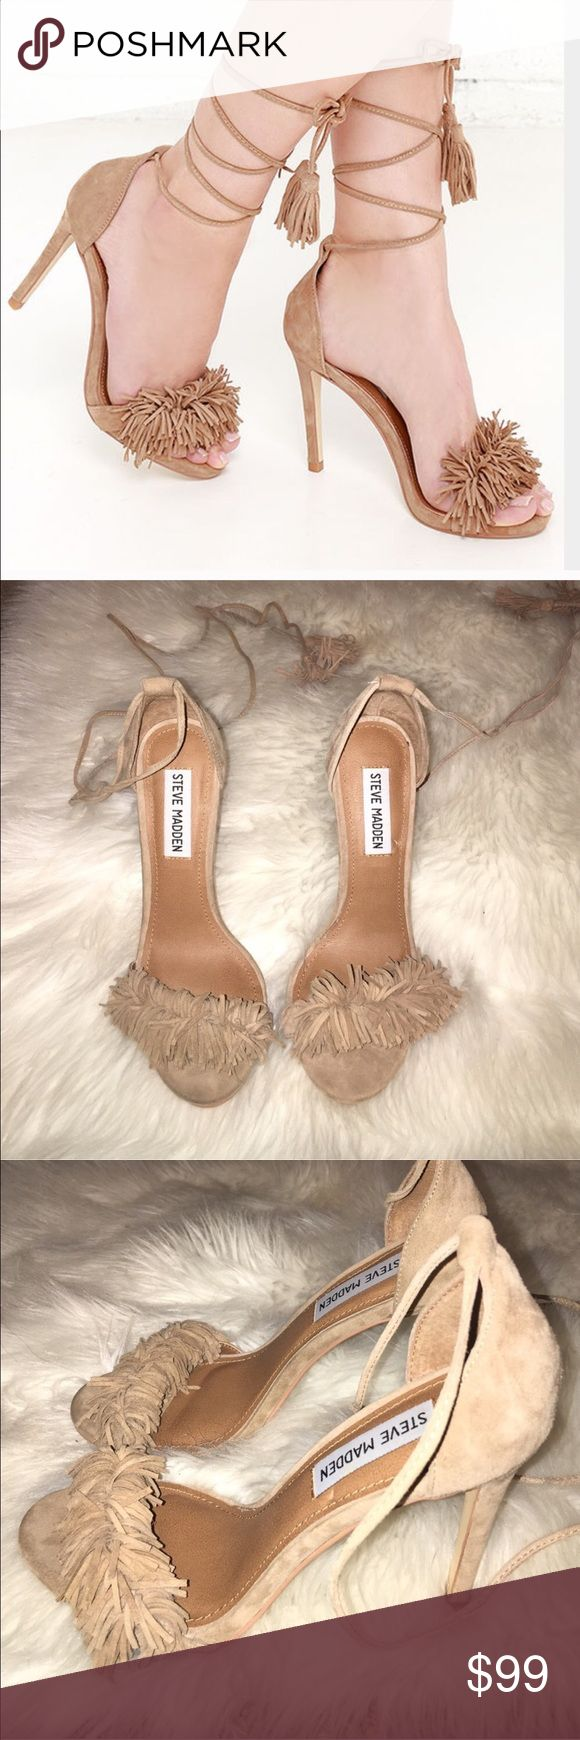 Steve Madden sassey heels 🎉1 hr flash sale 🎉 So so cute fringe lace up heels in love with these but sadly I have too many shoes . only worn once for a party size 6 . in color blush.  so trendy 😍 and sold out in every store. Steve Madden Shoes Heels